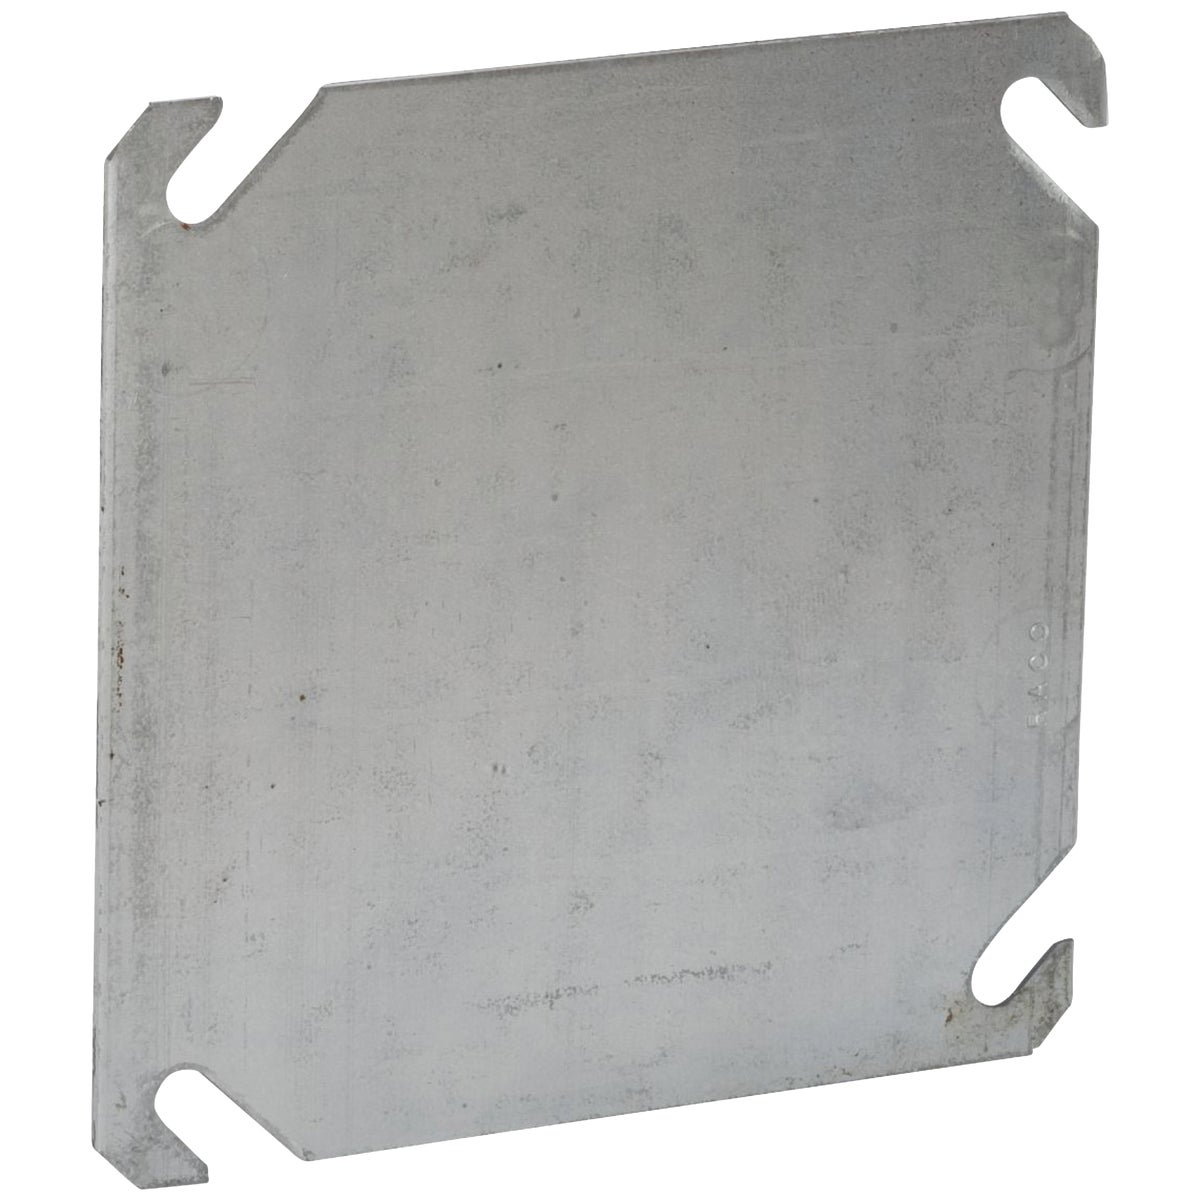 "4"" SQ BLANK COVER - 52C1 by Thomas & Betts"